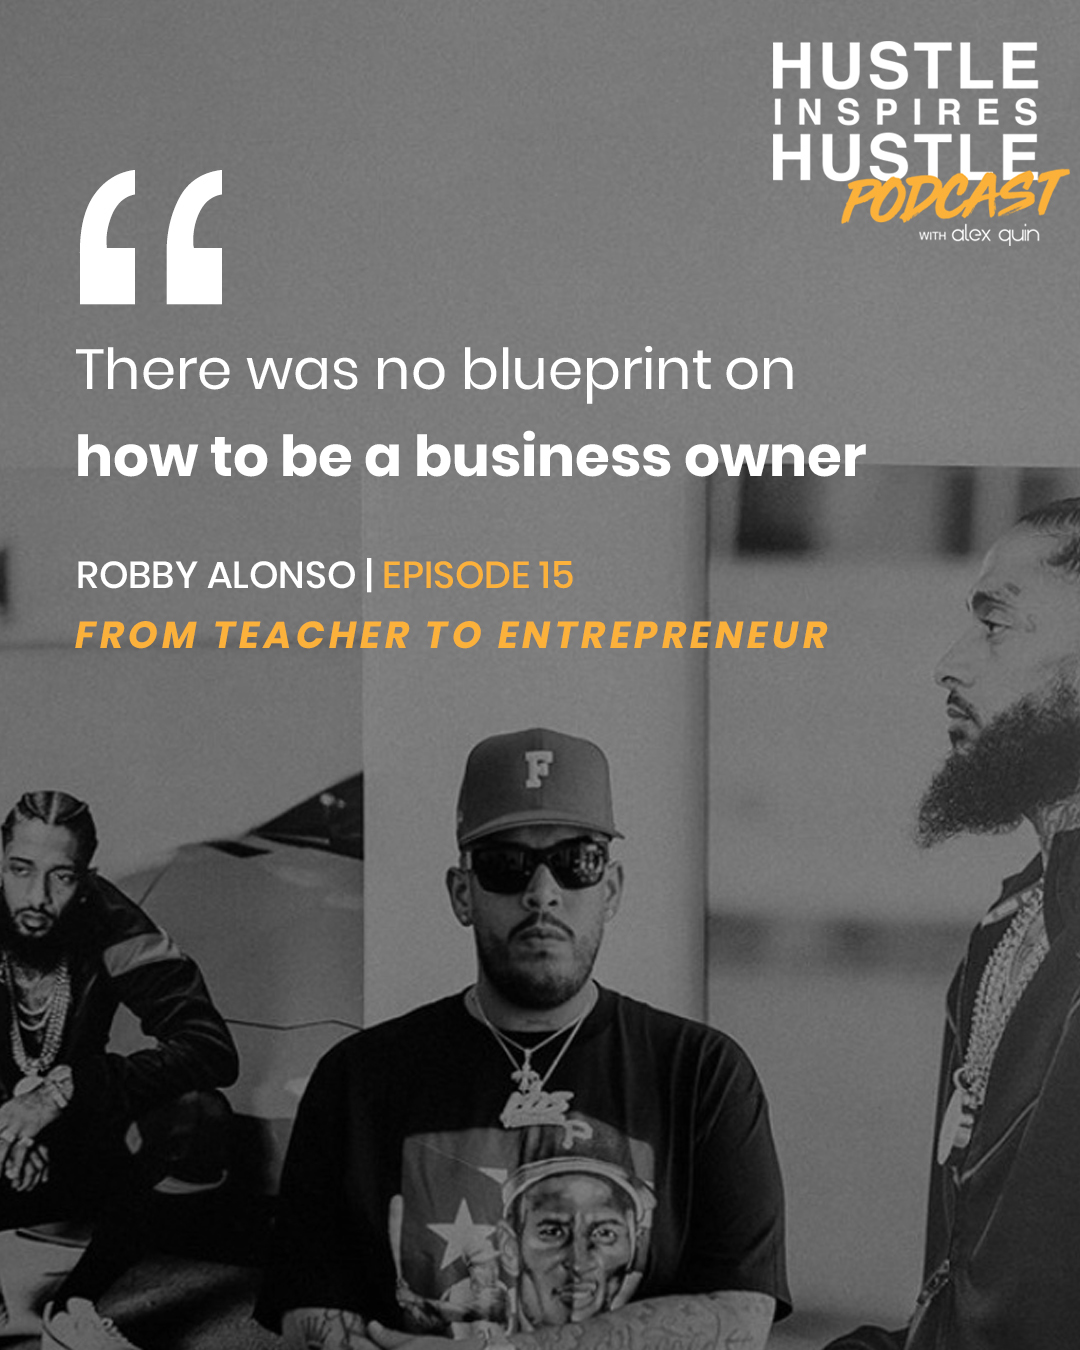 Robby Alonso & Alex Quin - On Hustle Inspires Hustle Podcast